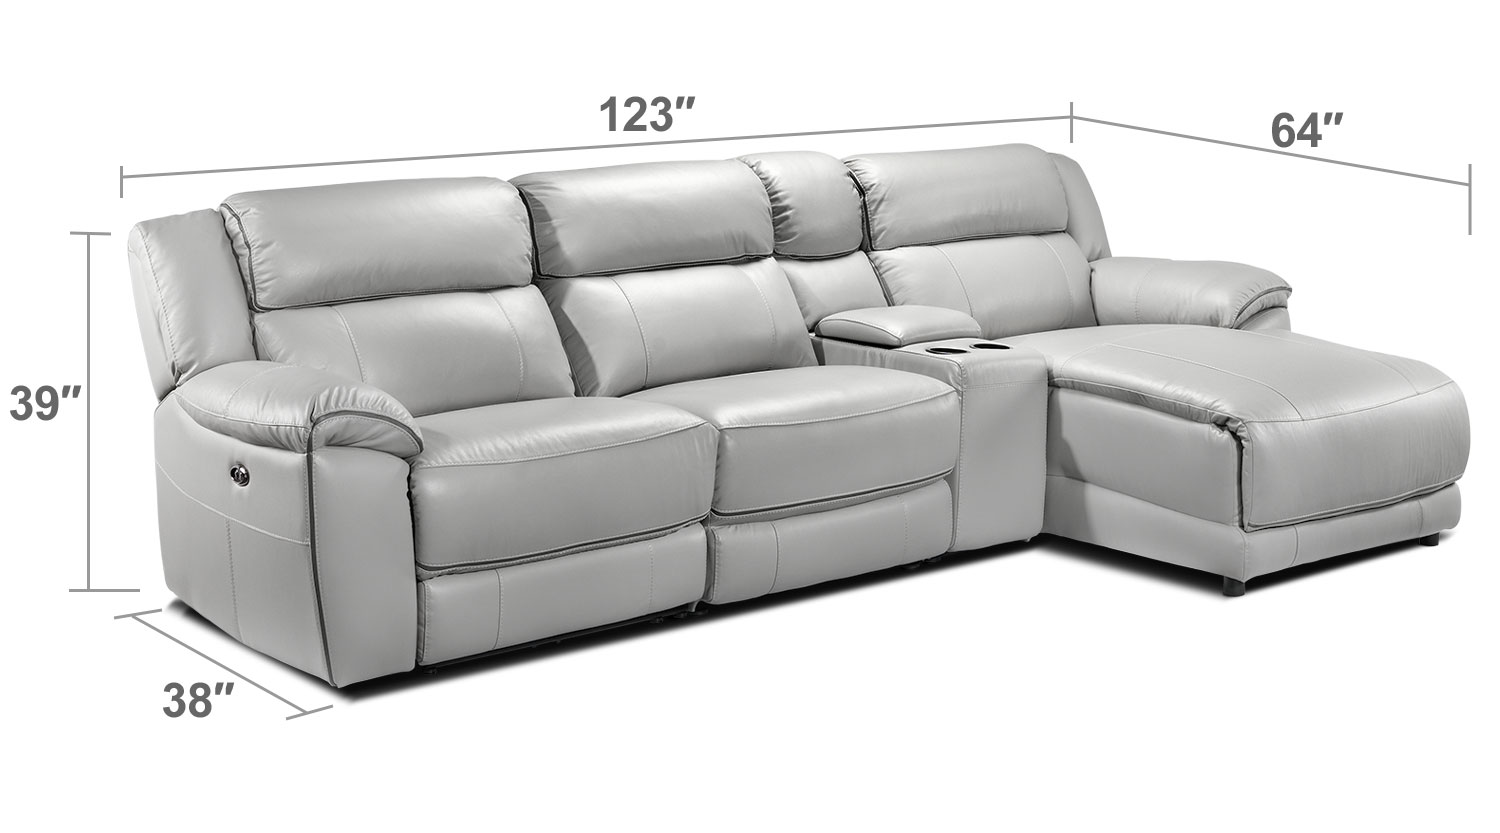 Living Room Furniture - Holton 4 Pc. Sectional - Grey